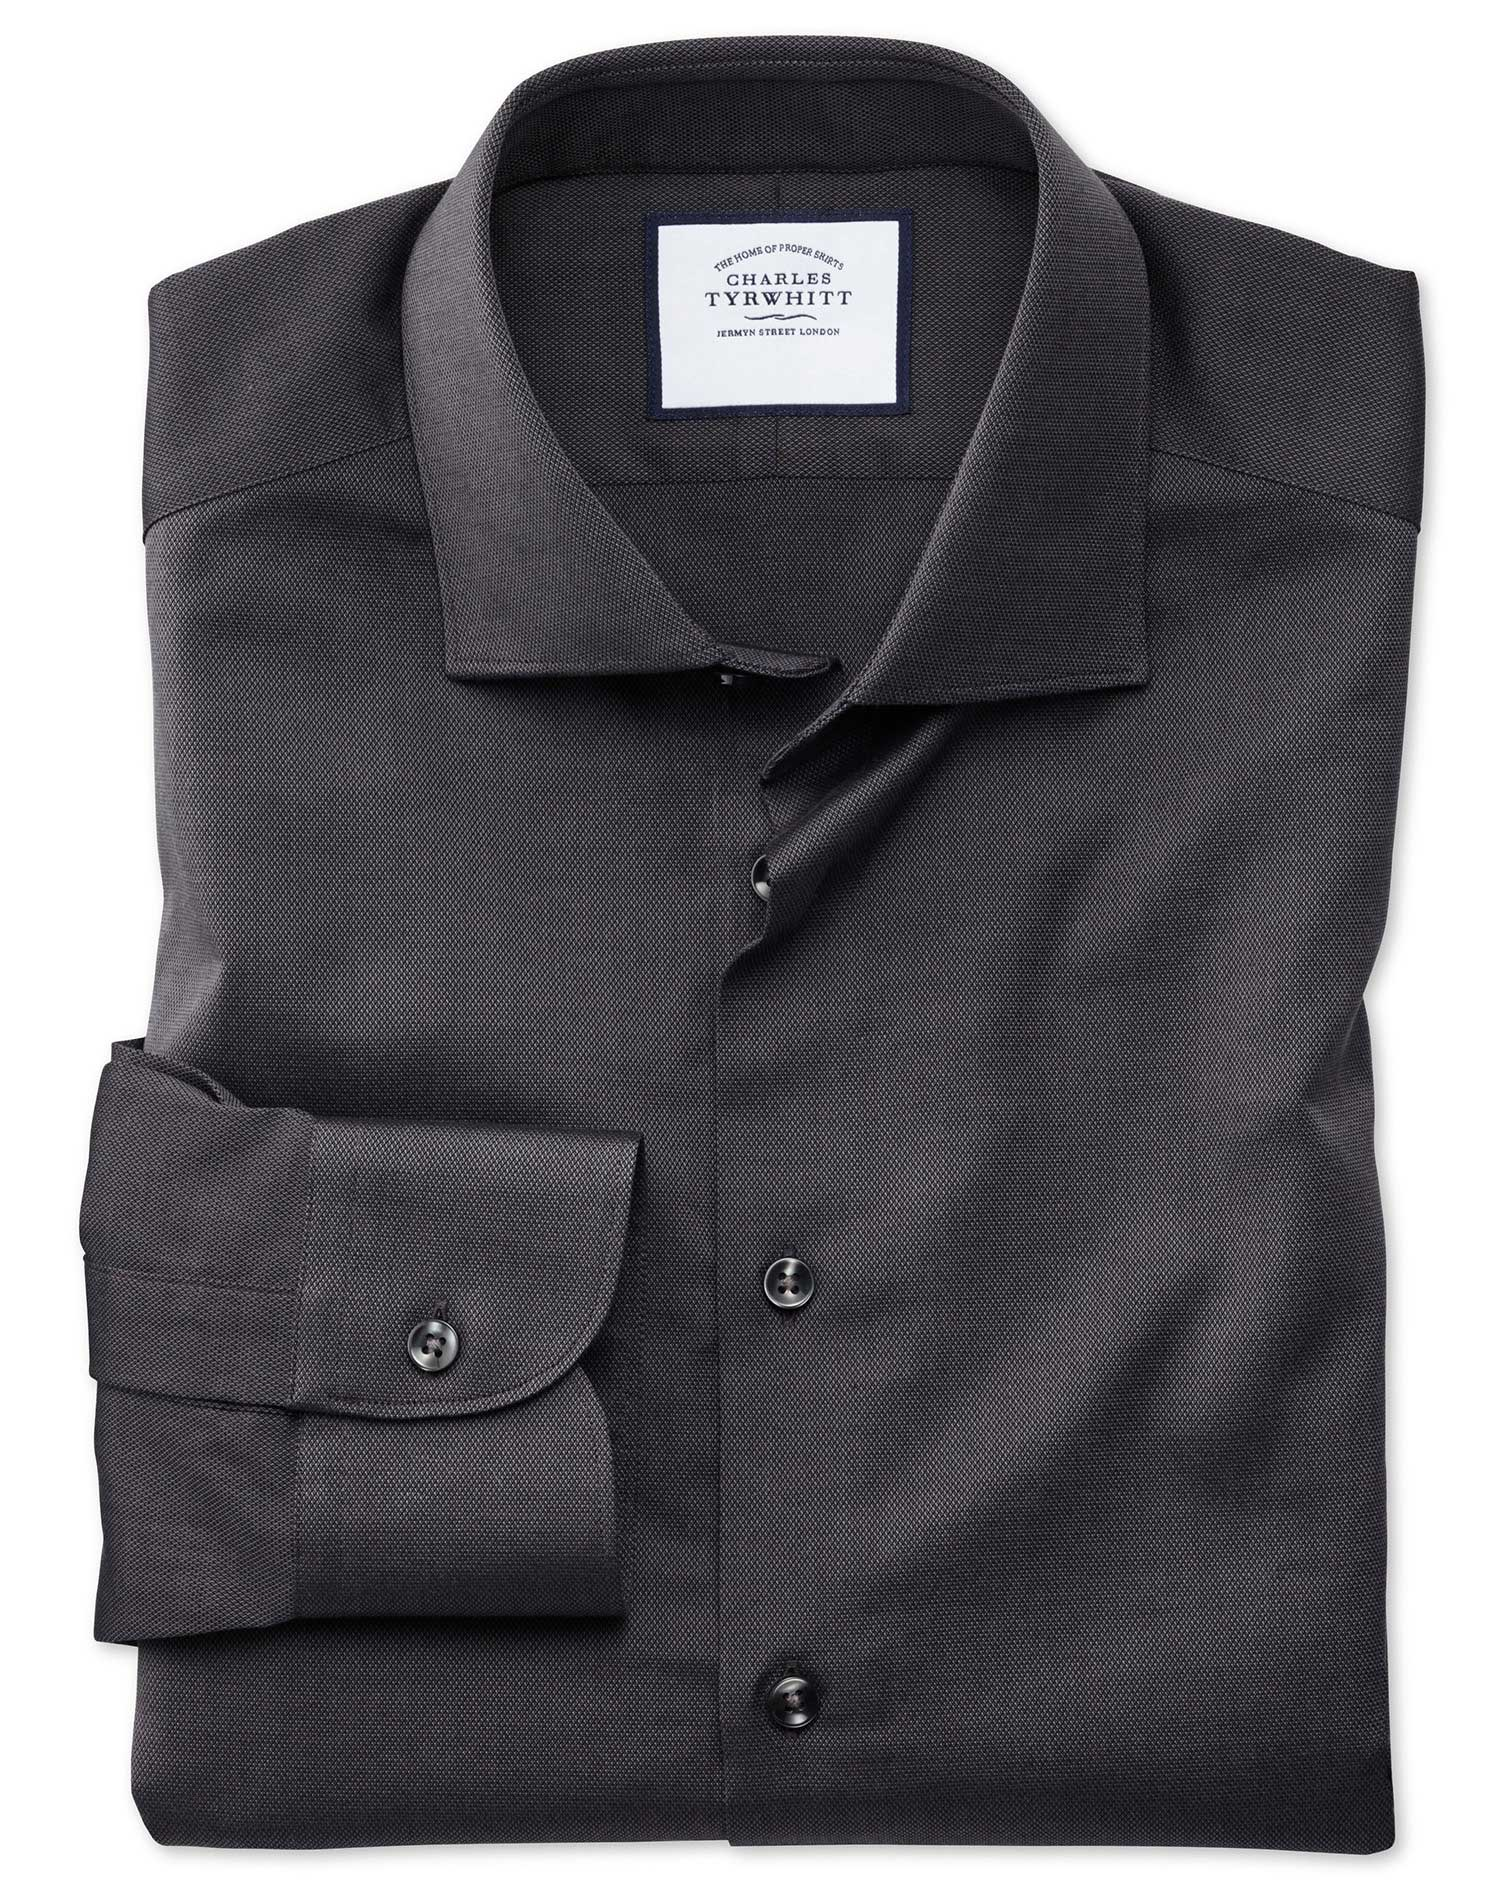 Extra Slim Fit Business Casual Charcoal Royal Oxford Cotton Formal Shirt Single Cuff Size 15/35 by C